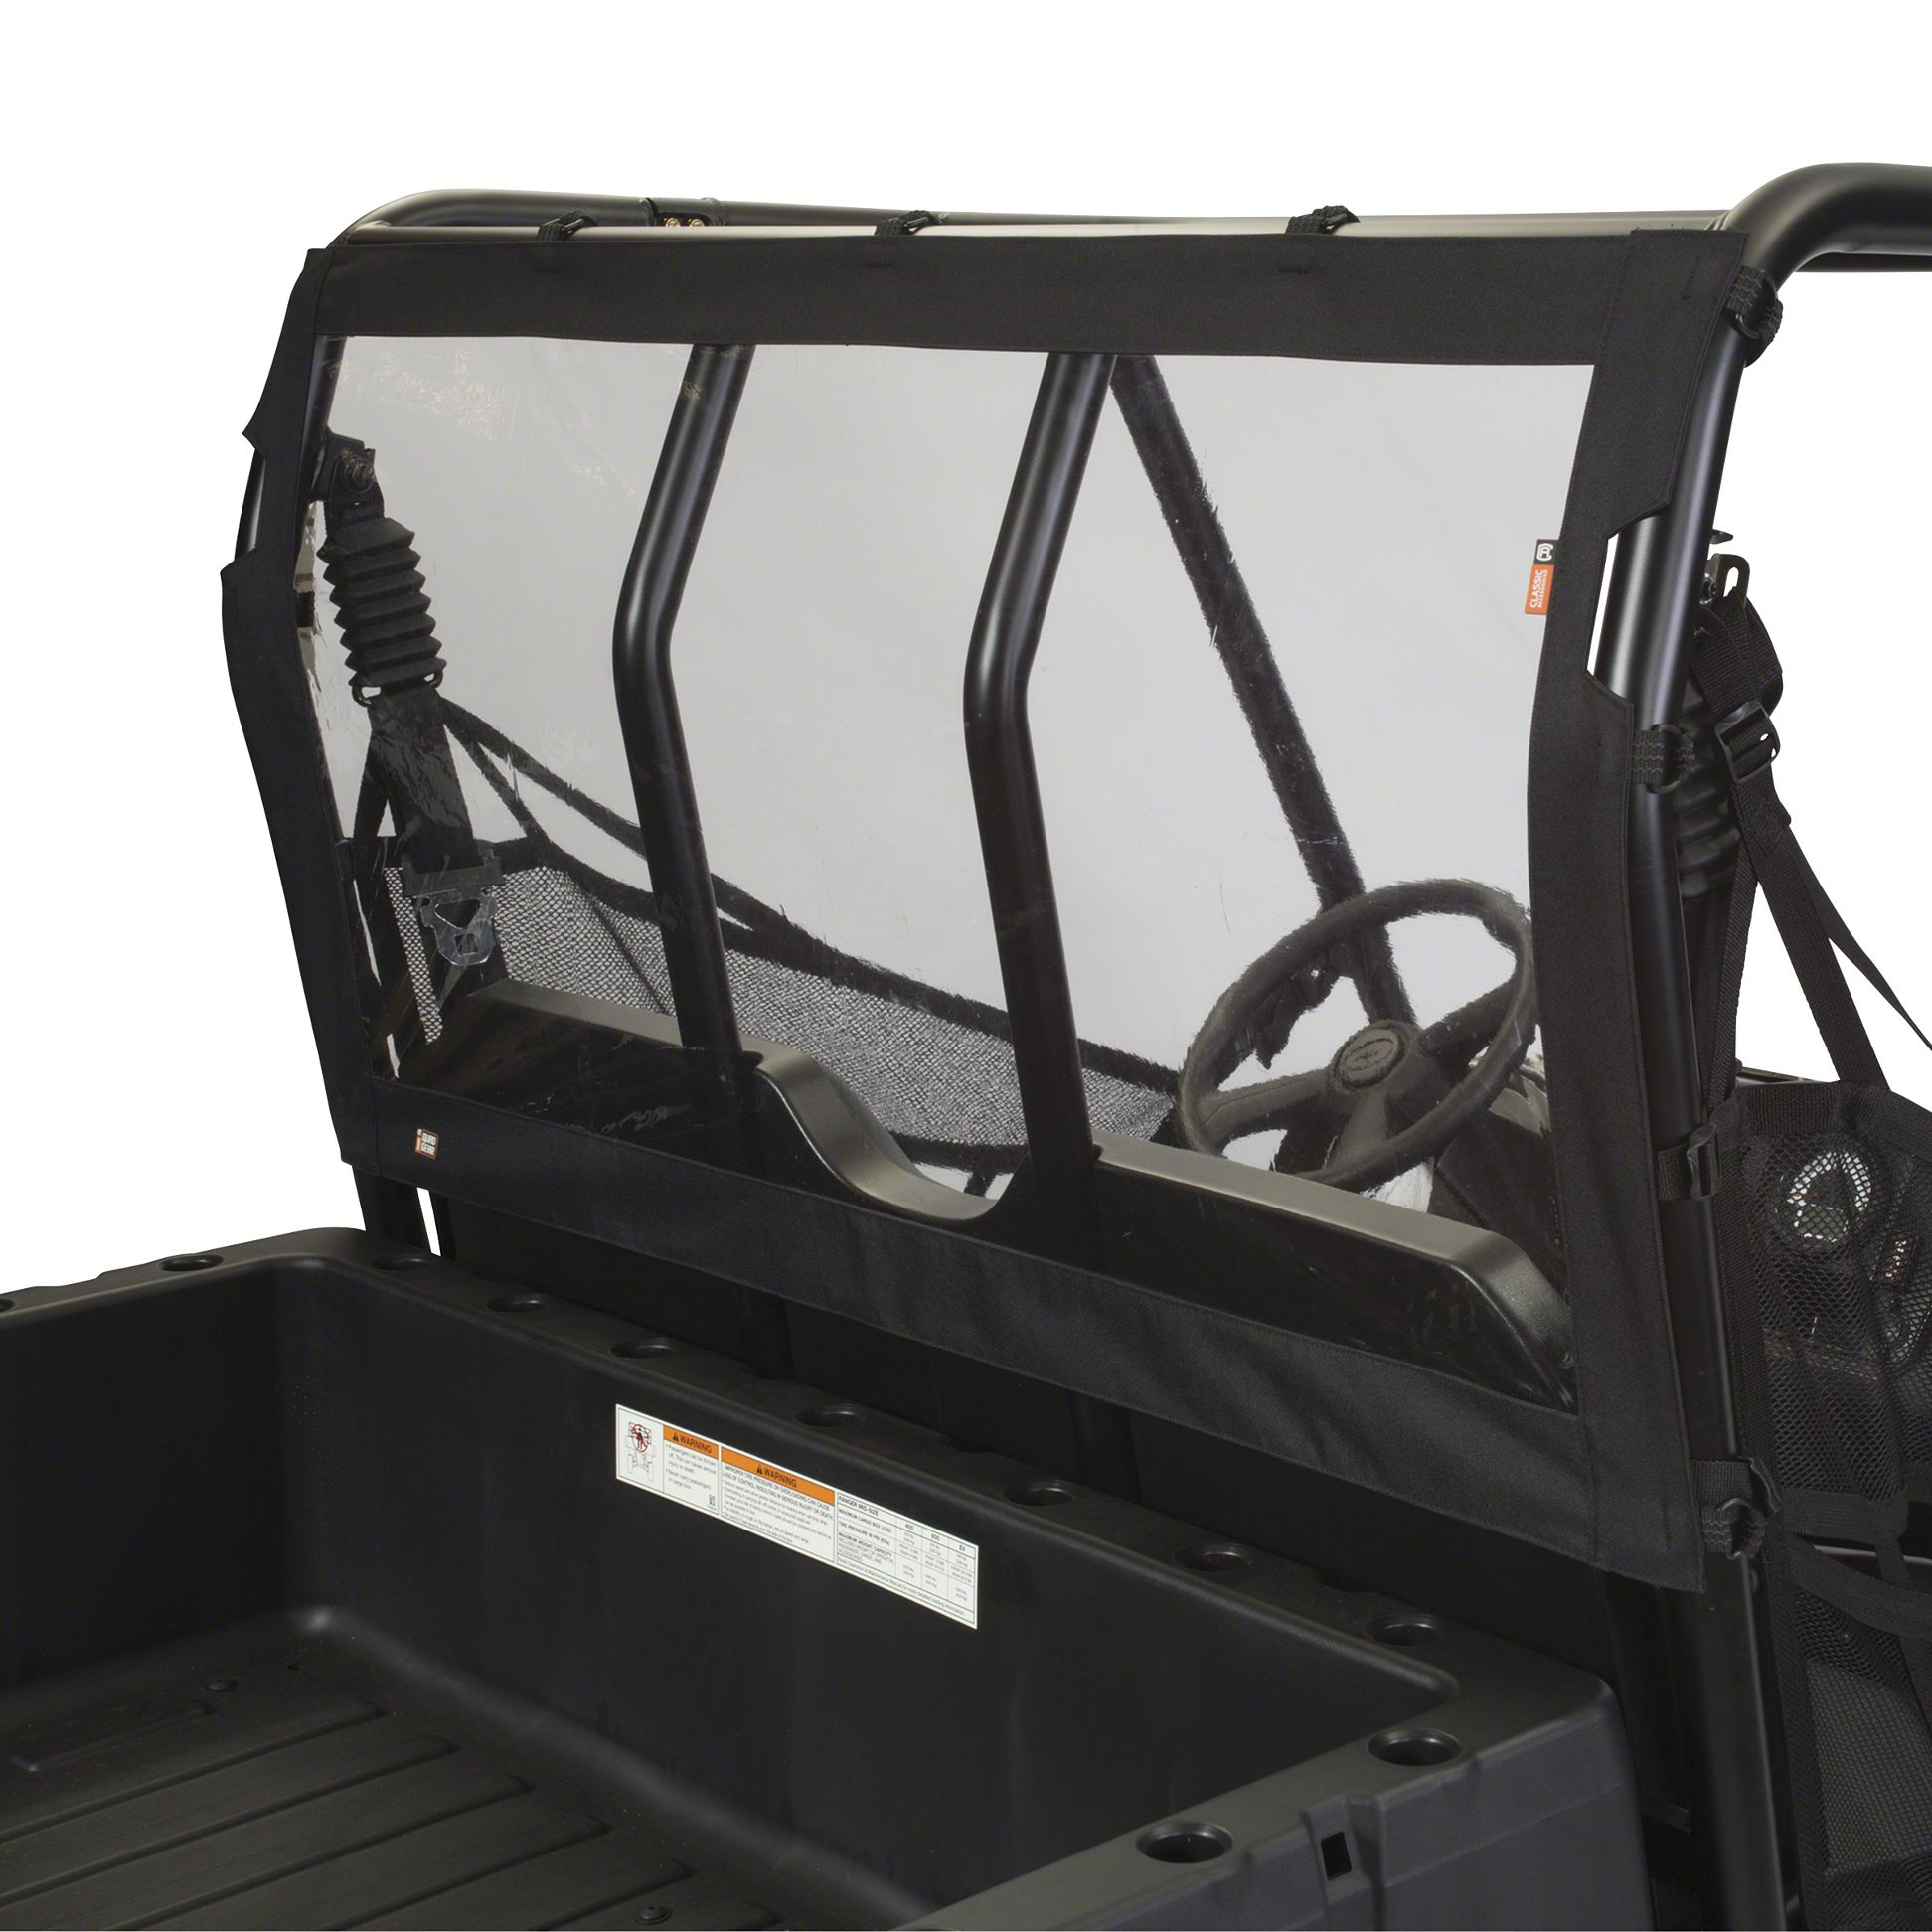 Polaris 174 Ranger 400 570 800 Mid 2015 Rear Window